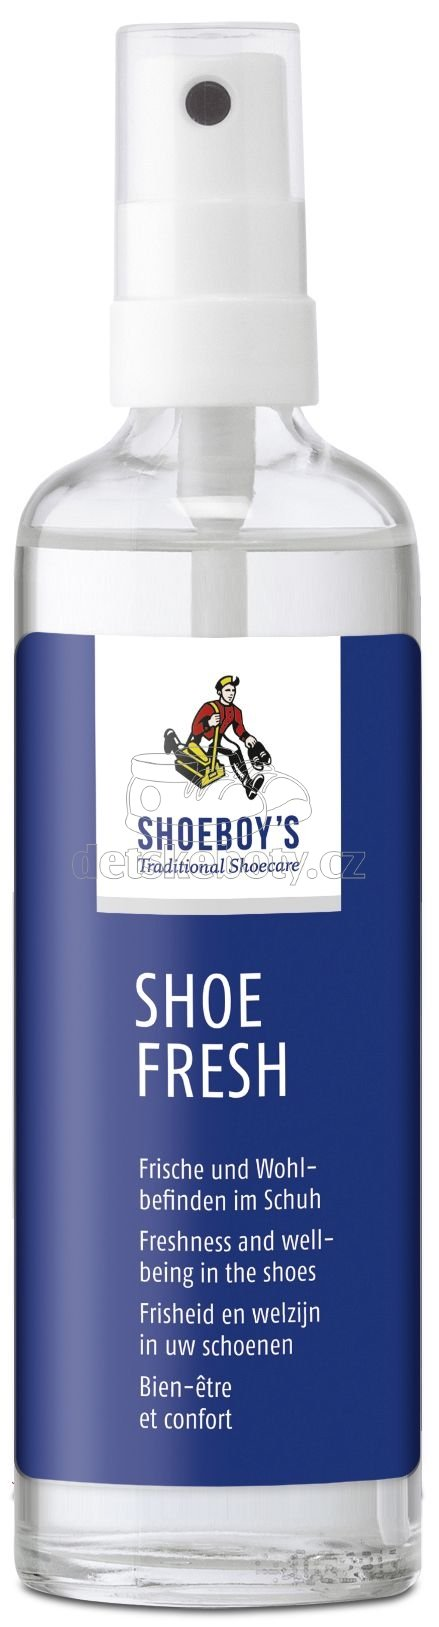 Shoeboy's SHOE FRESH 100 ml